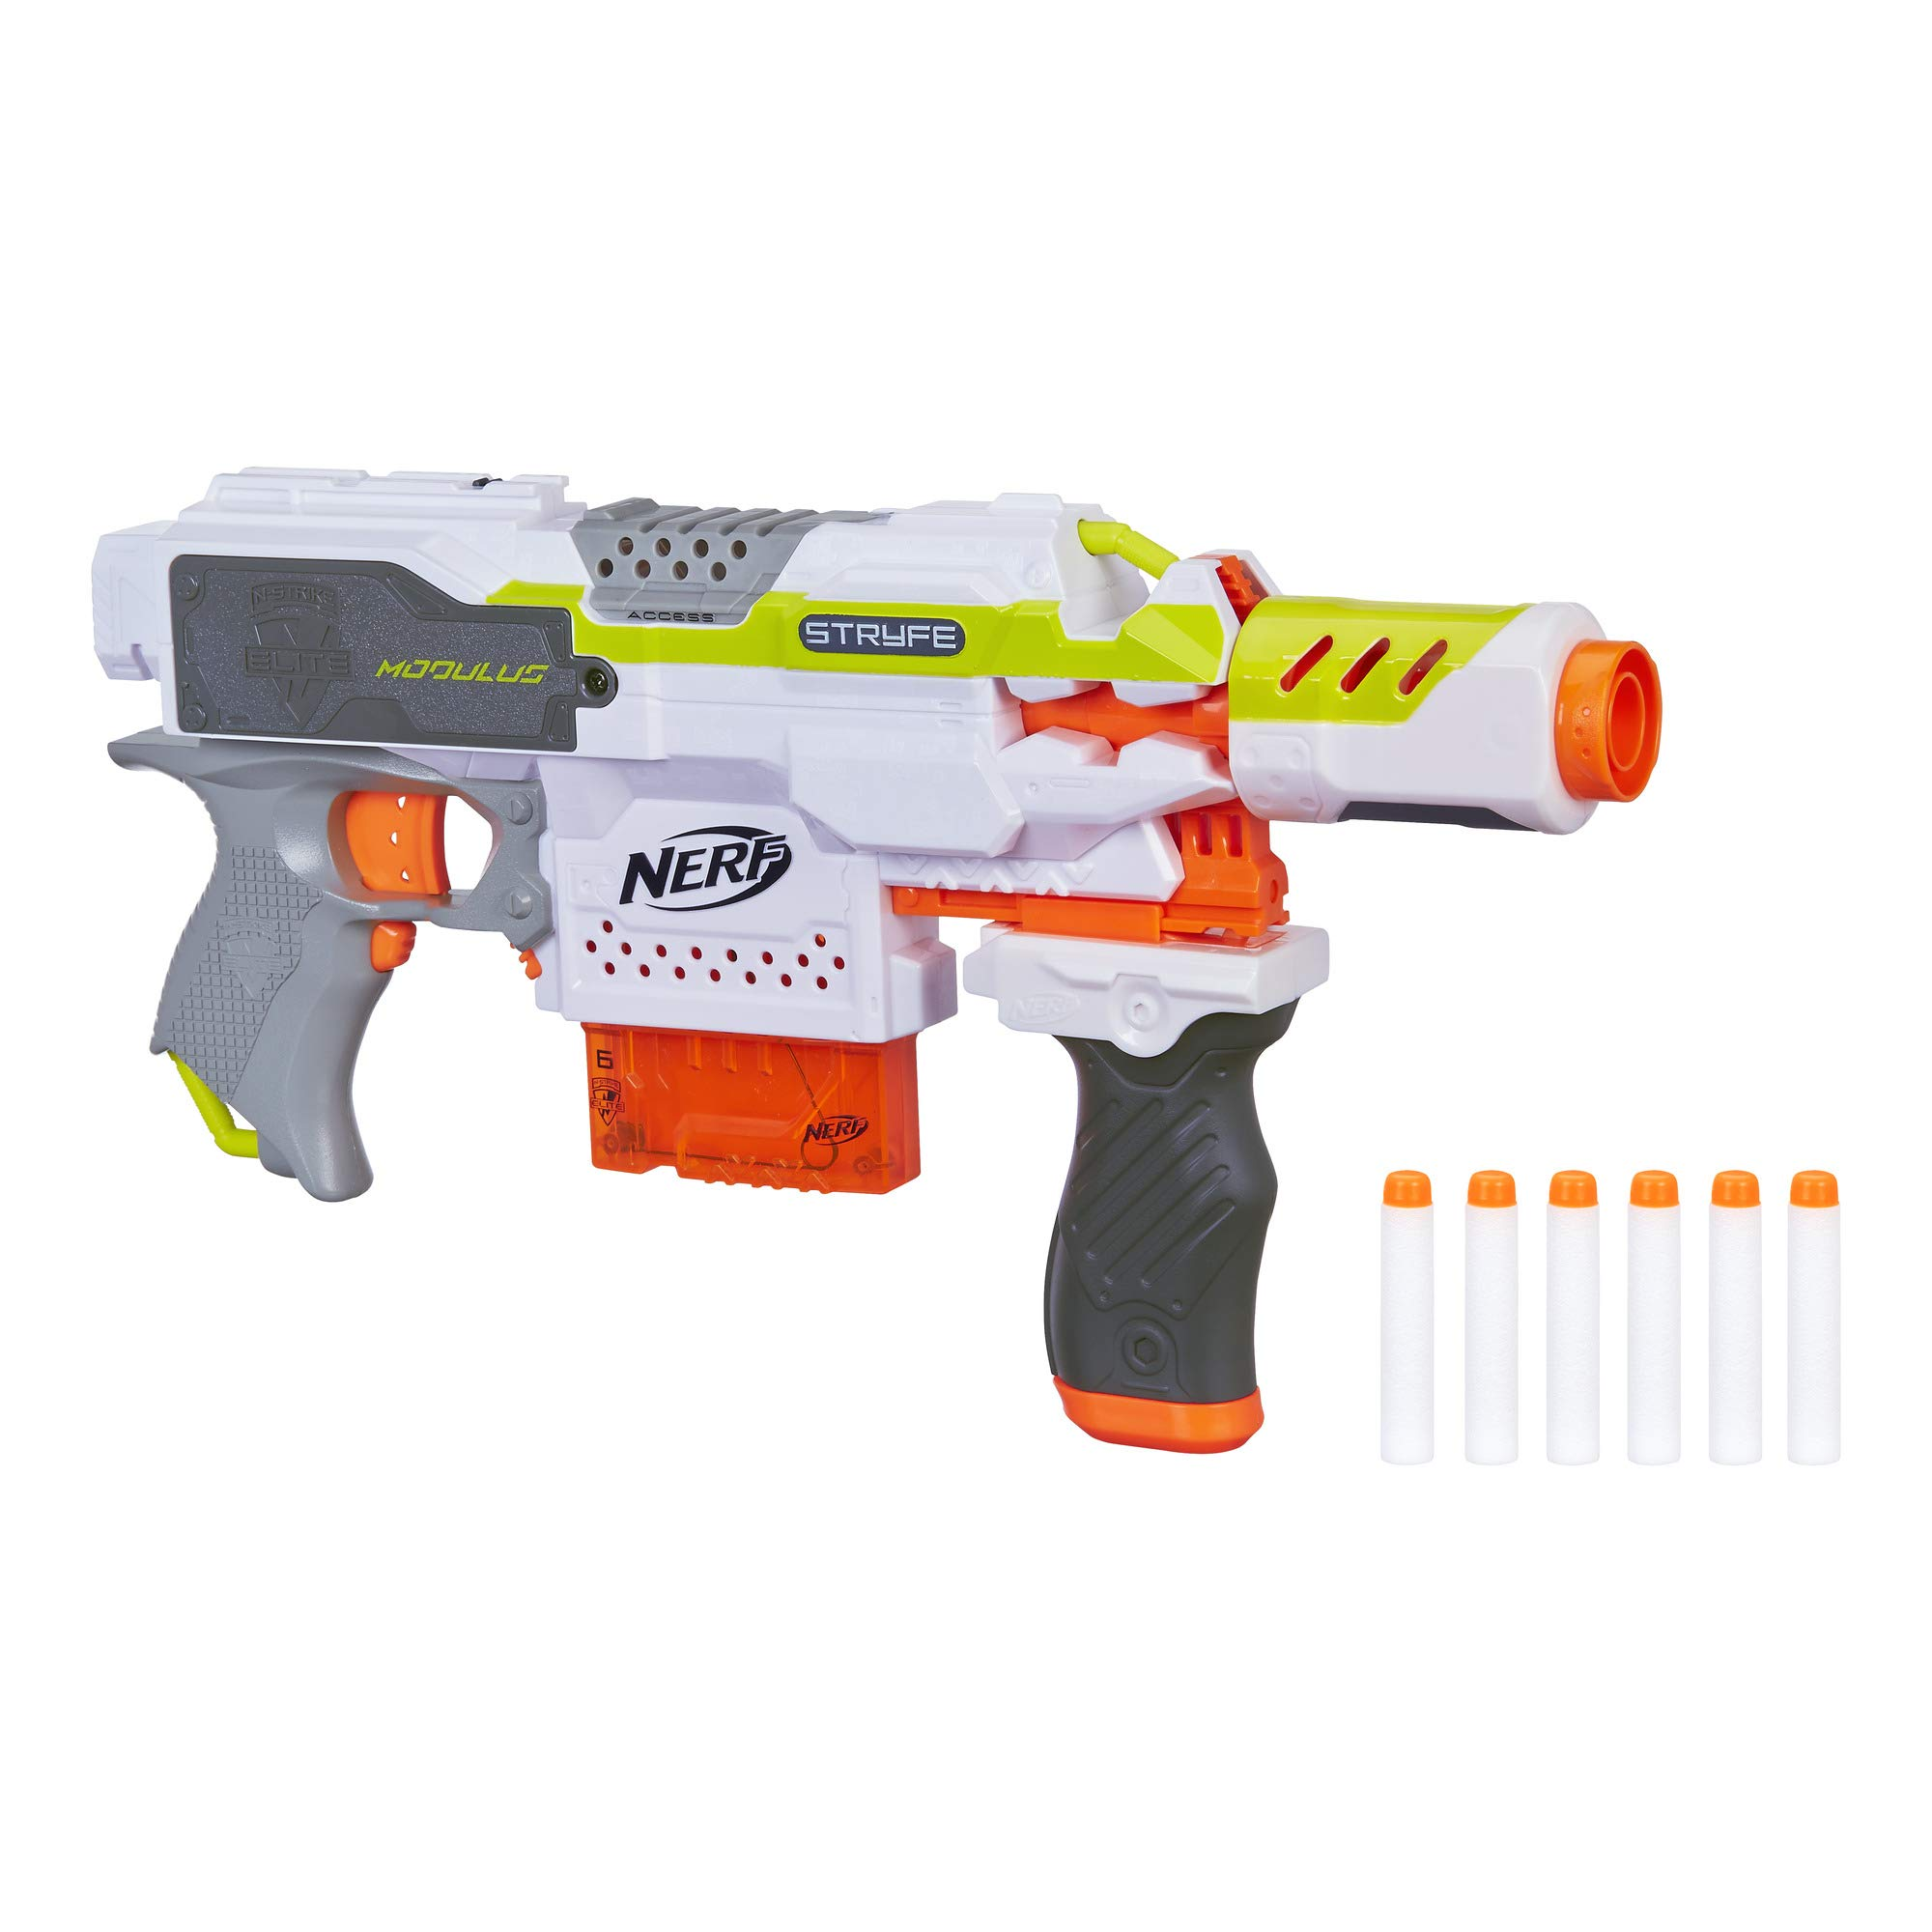 Nerf Modulus Motorized Toy Blaster with Drop Grip, Barrel Extension, 6-Dart Clip, 6 Official Darts for Kids, Teens, & Adults (Amazon Exclusive) by NERF